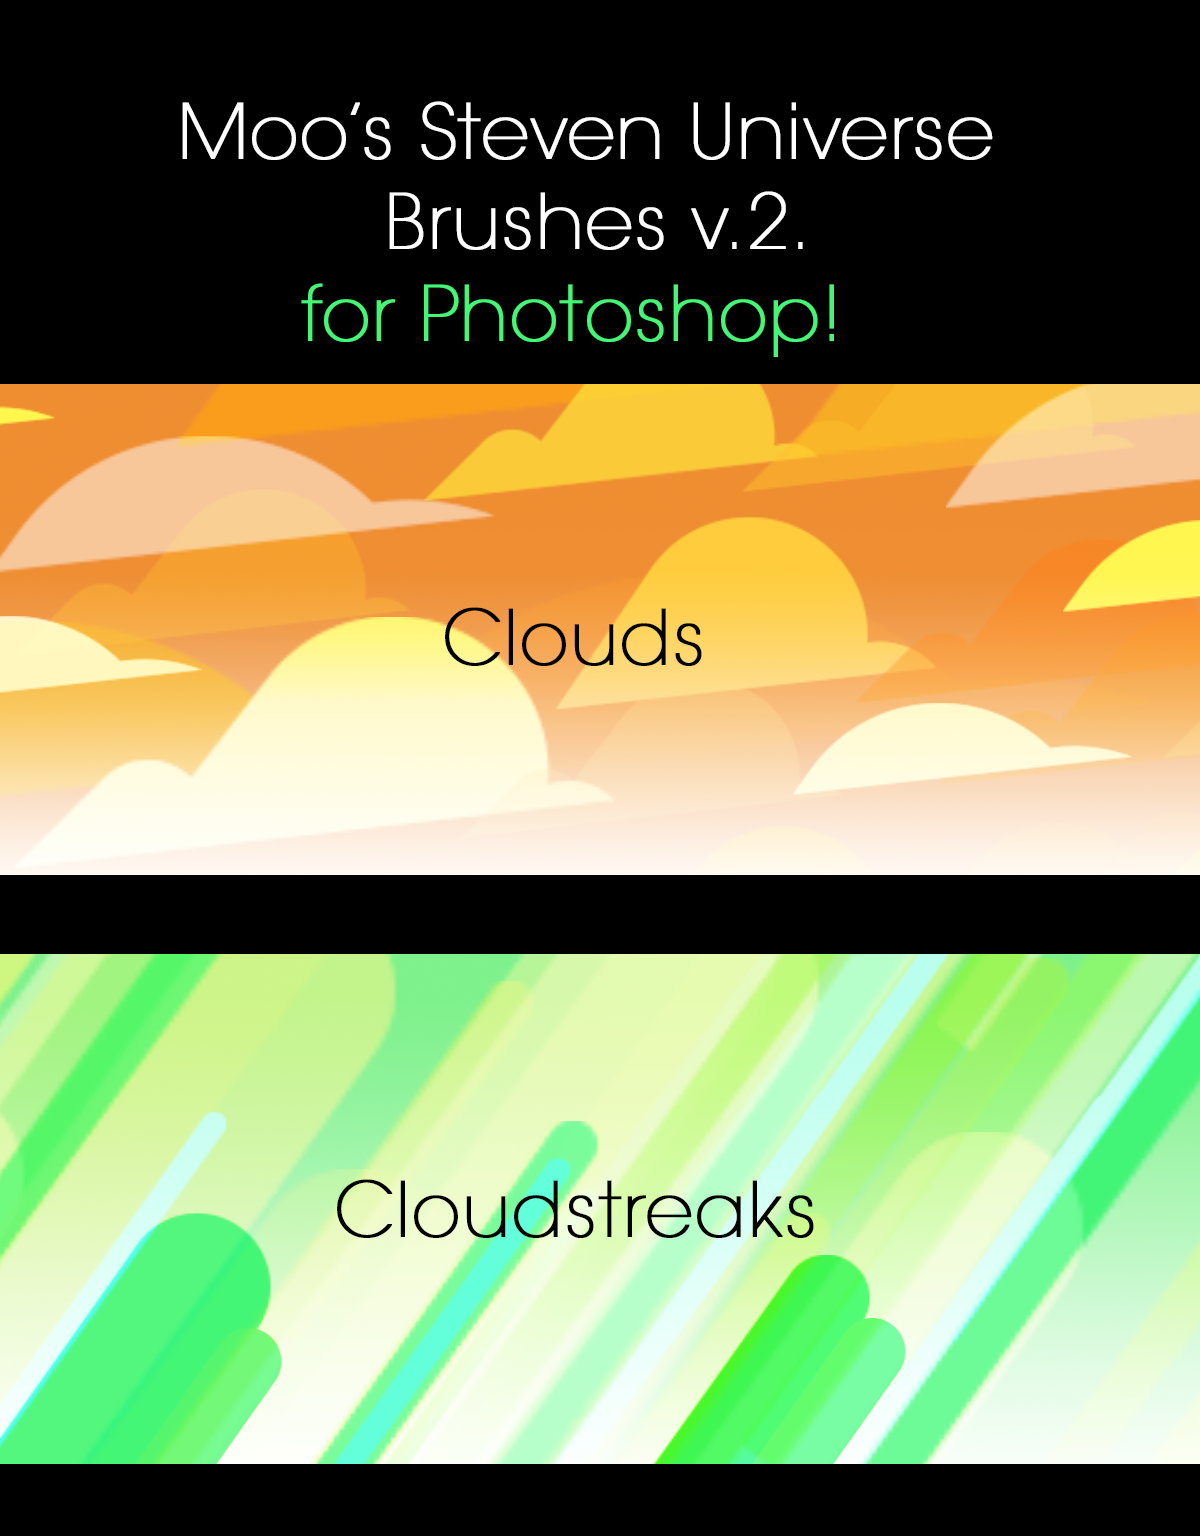 Clouds brushes for photoshop cs6 free download